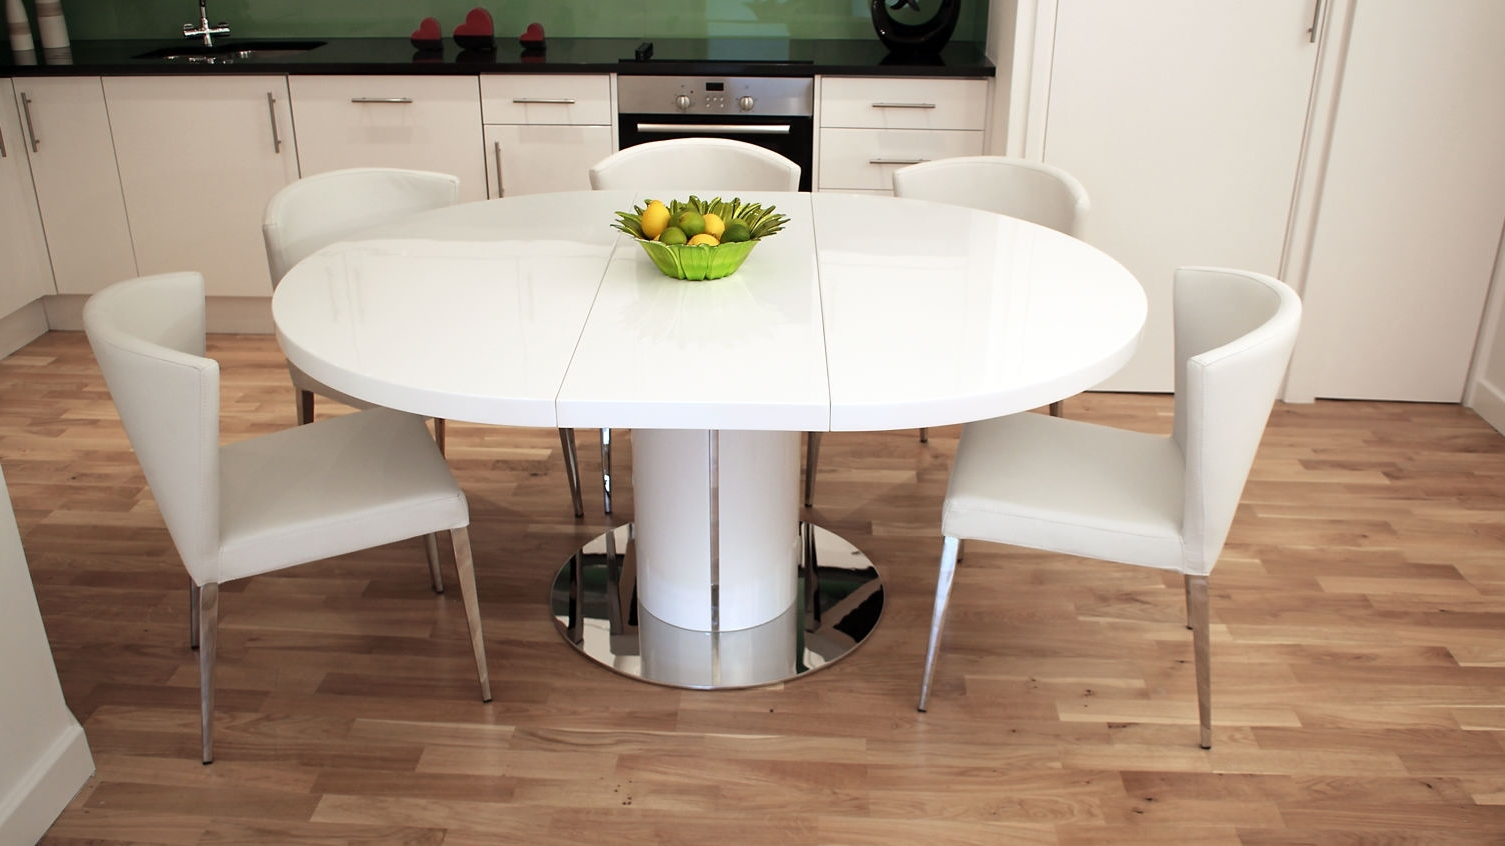 Trendy Large Outdoor Room Table Dimension Argos And Furniture For Round Inside Large White Round Dining Tables (View 11 of 25)